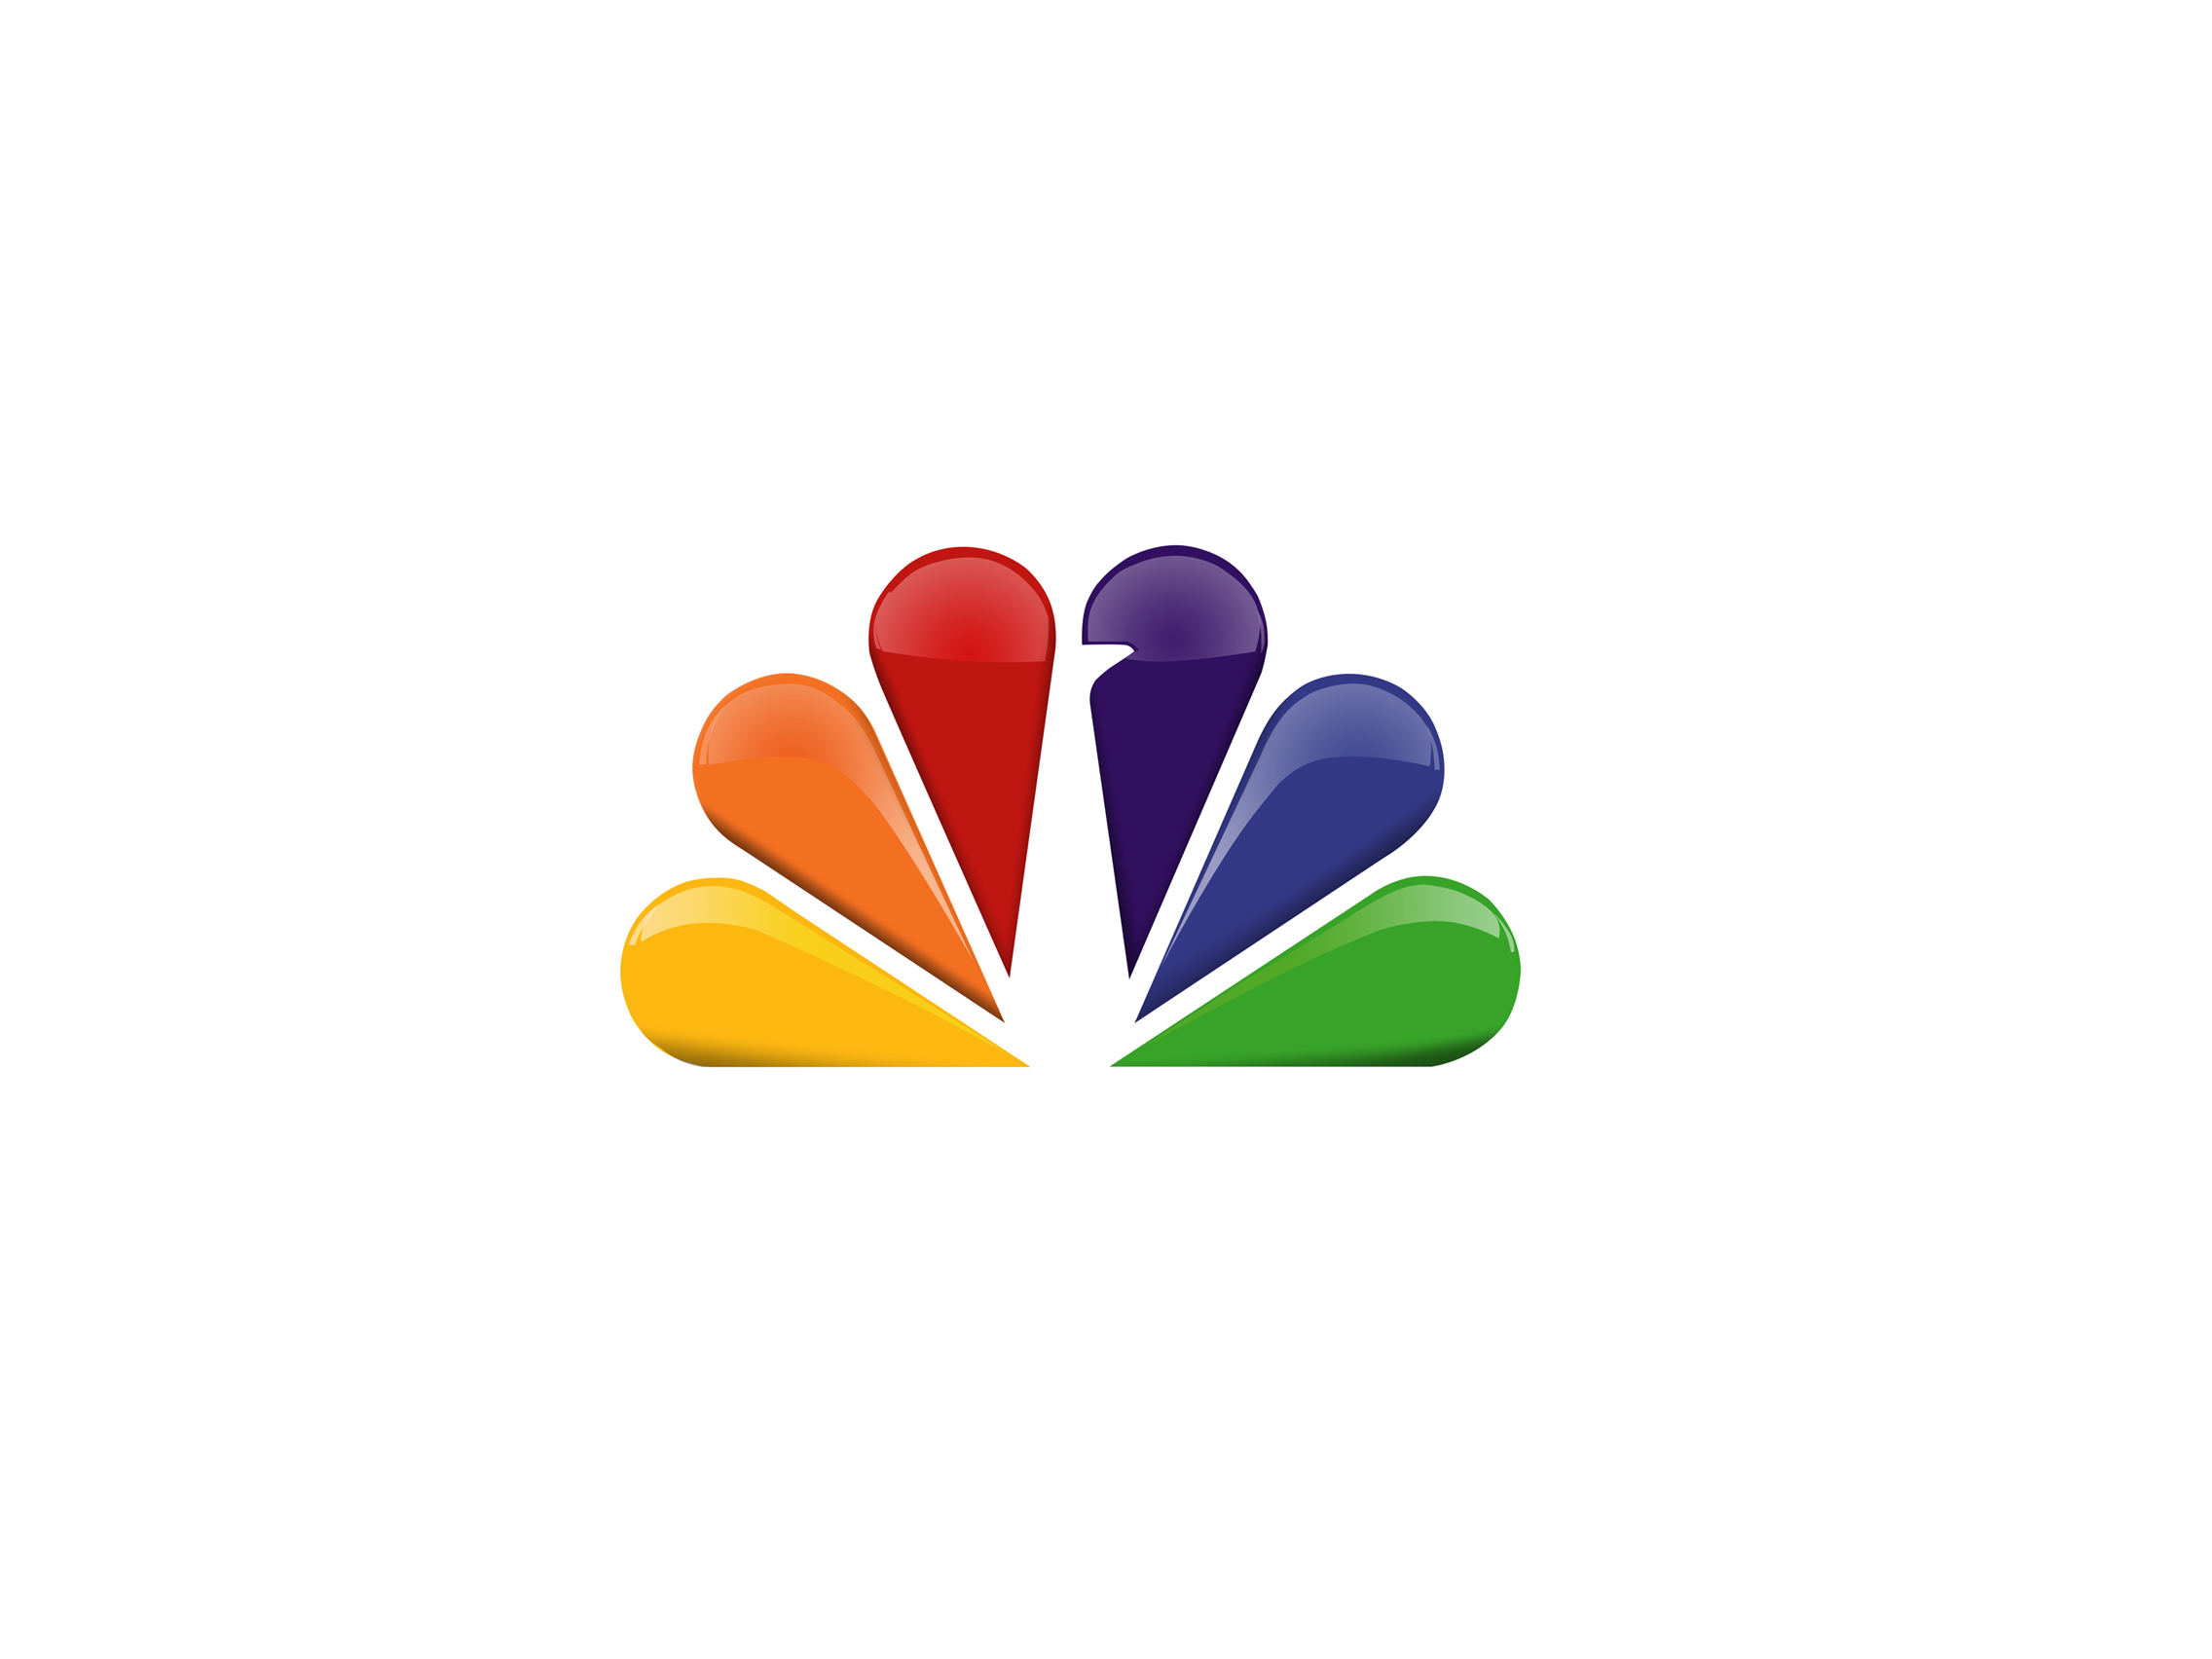 . PlusPng.com sixmonthslate NBC logo #5 background by sixmonthslate - Nbc PNG